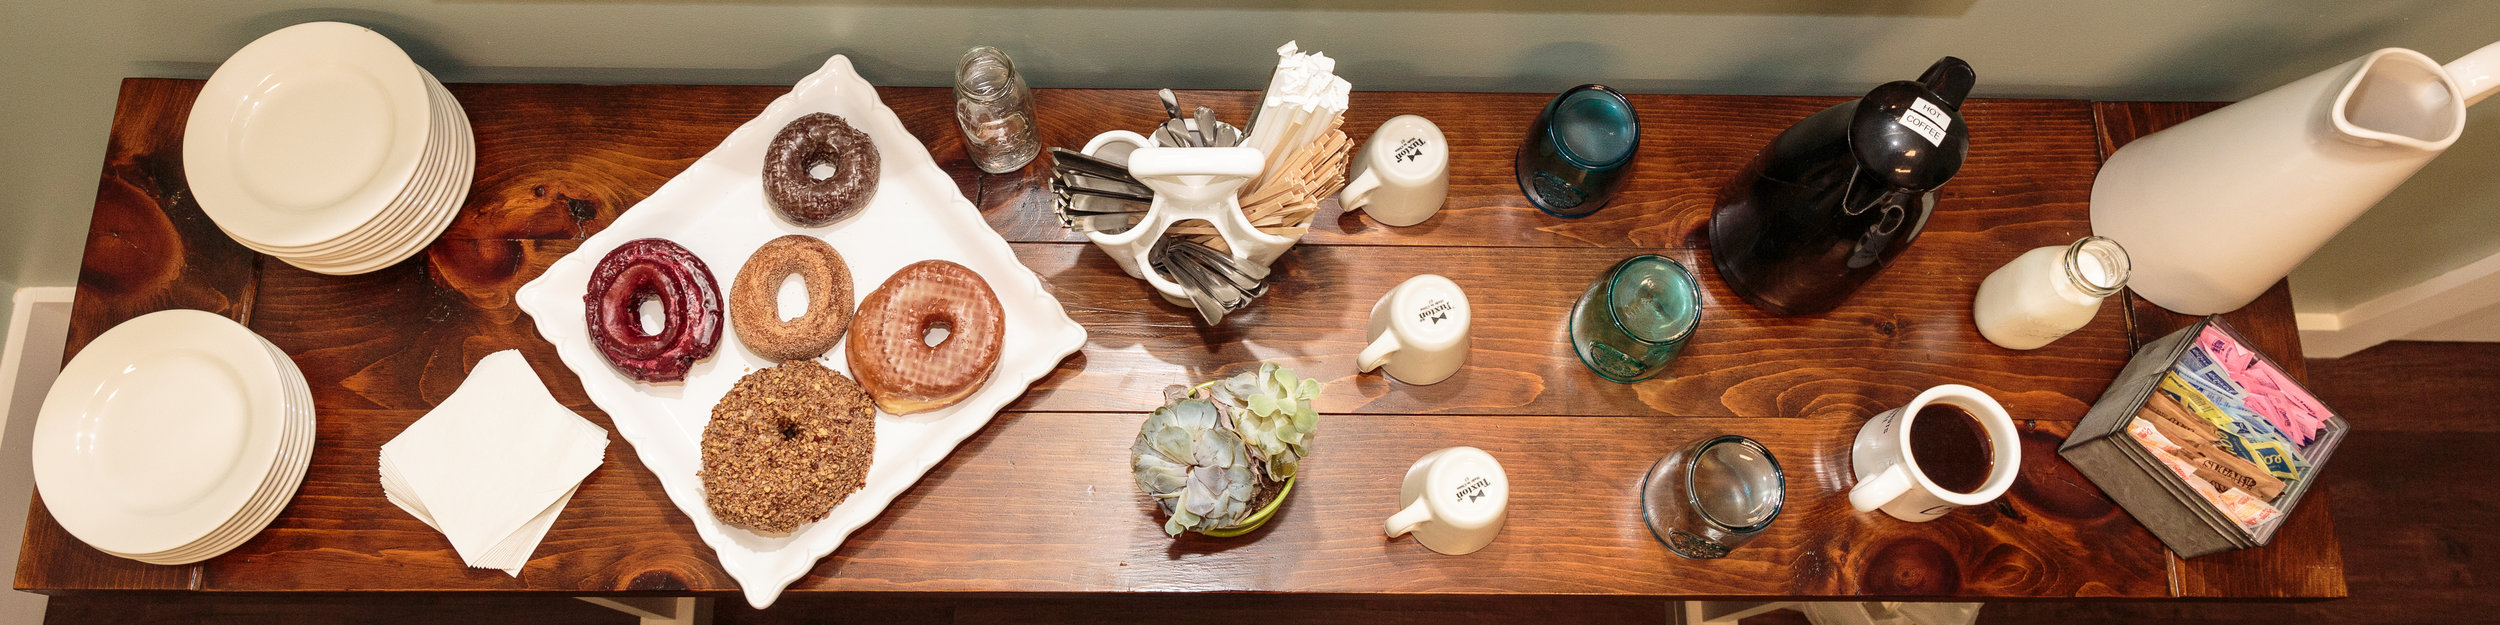 Enjoy a spread of delicious donuts and tasty coffee while you work